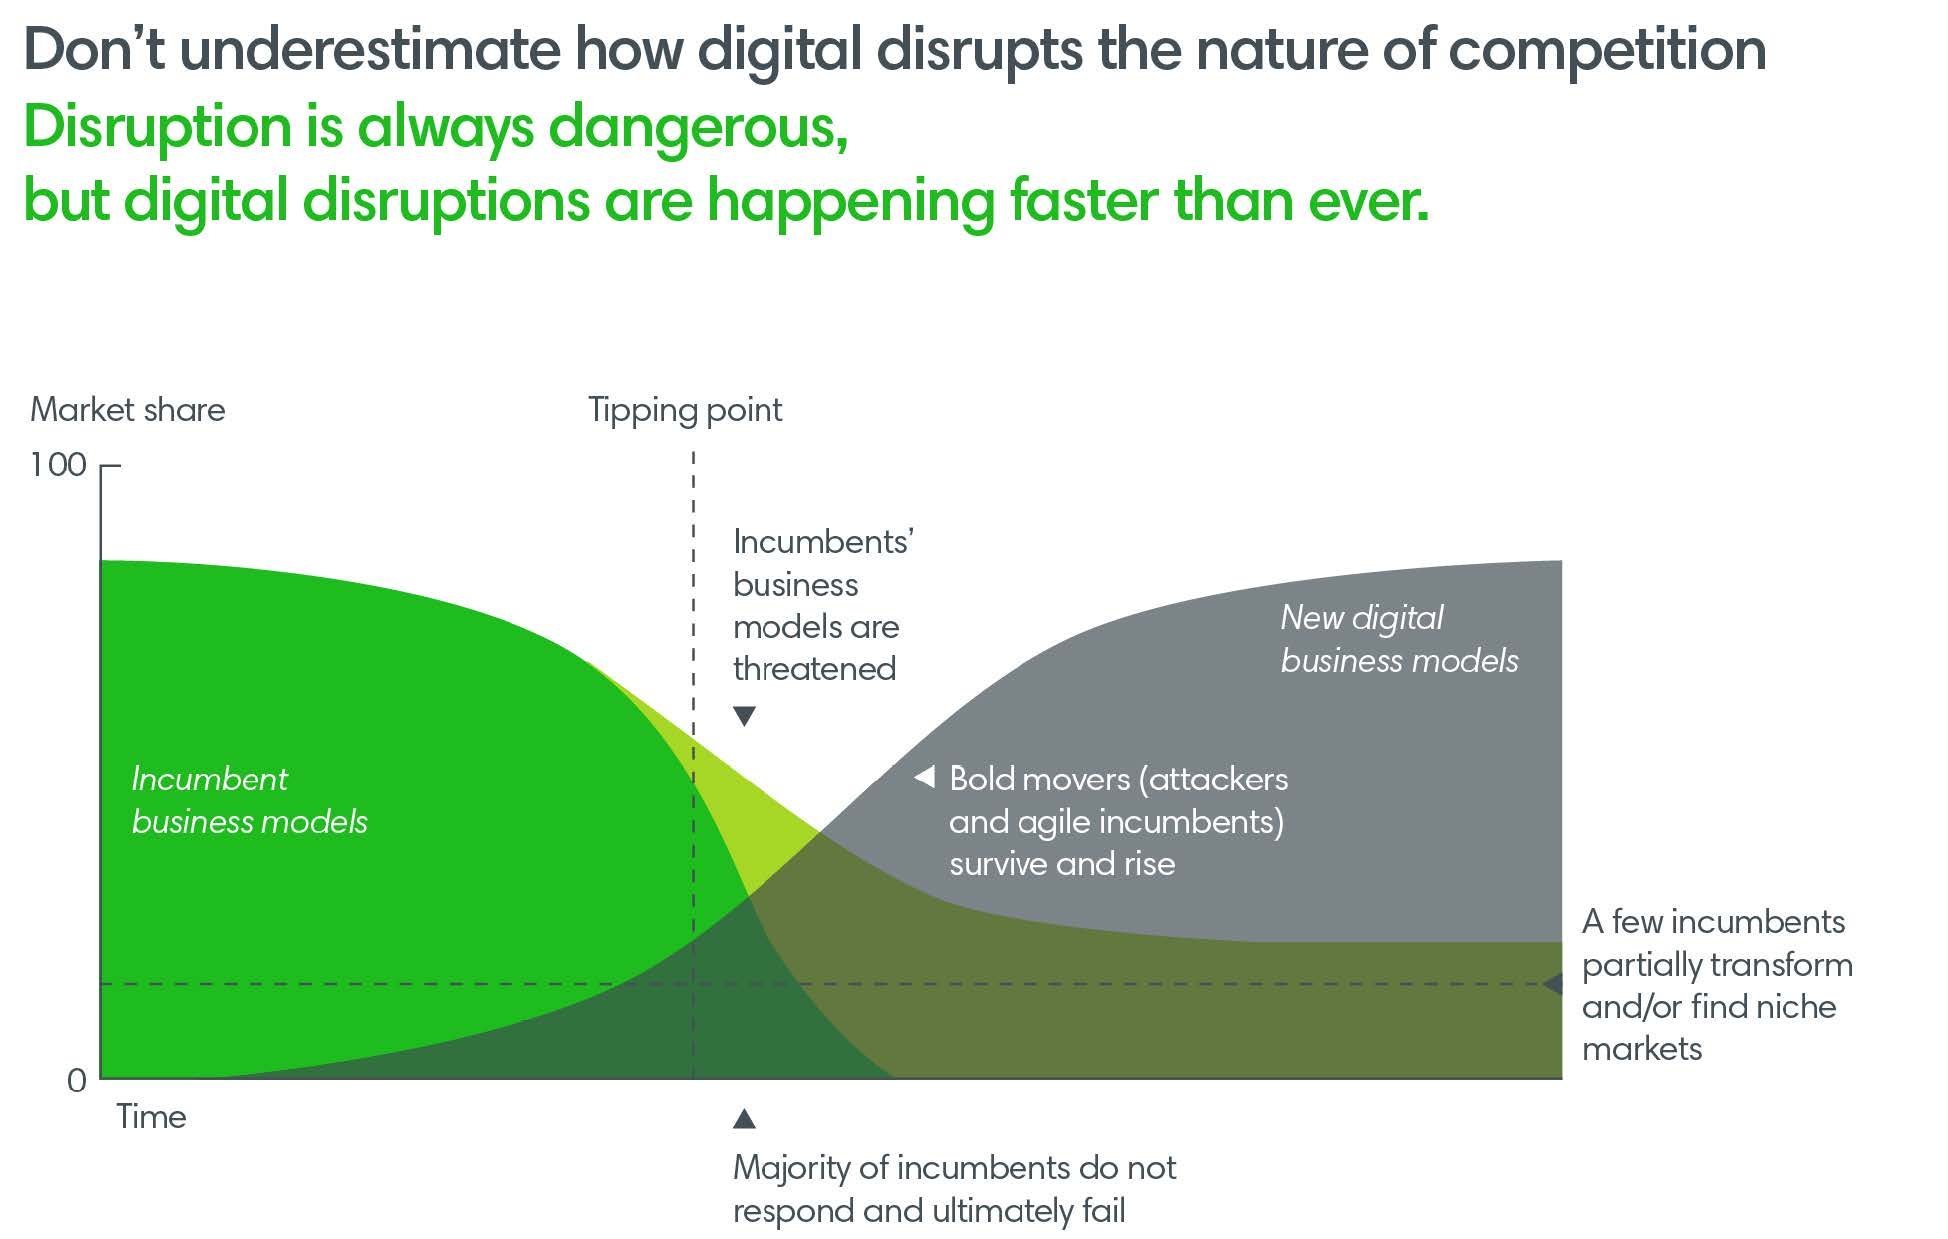 How digital disrupts the nature of competition